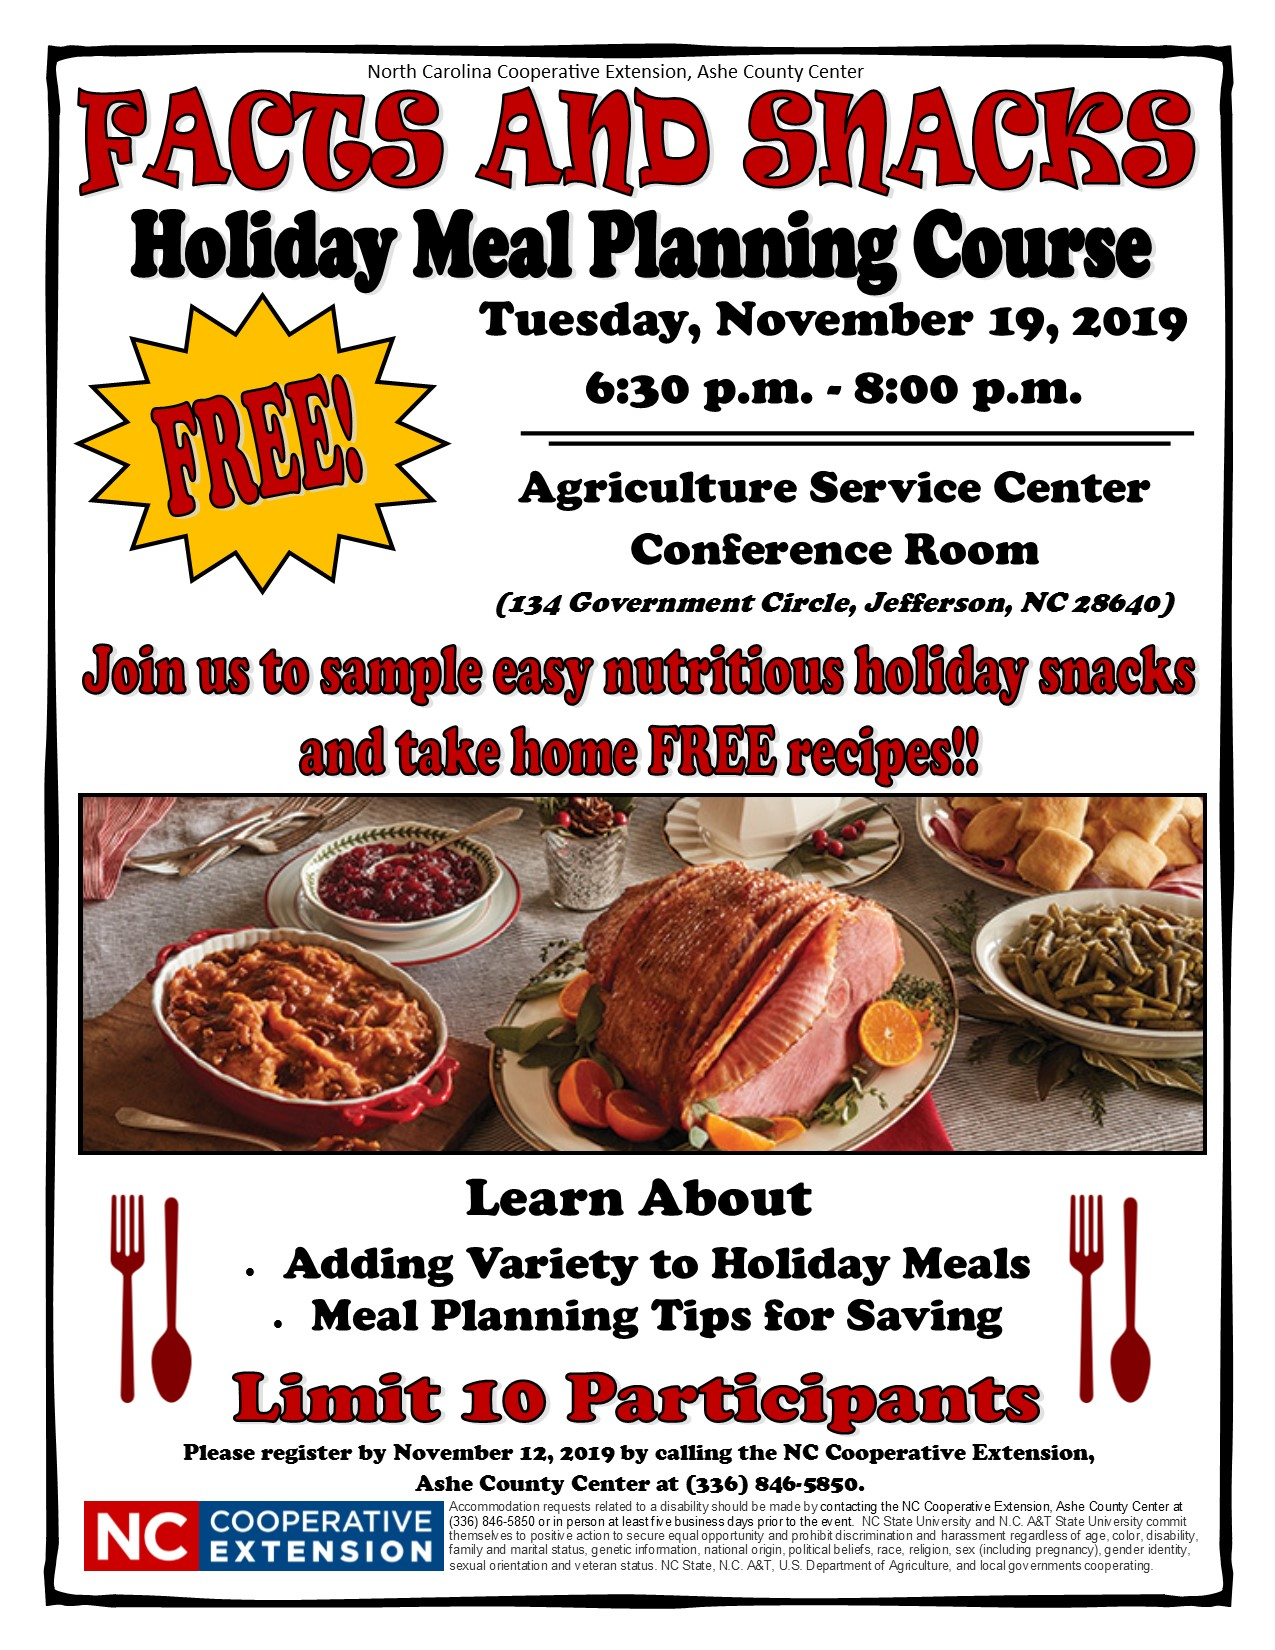 Facts and Snacks Holiday Meal Planning Course Flyer